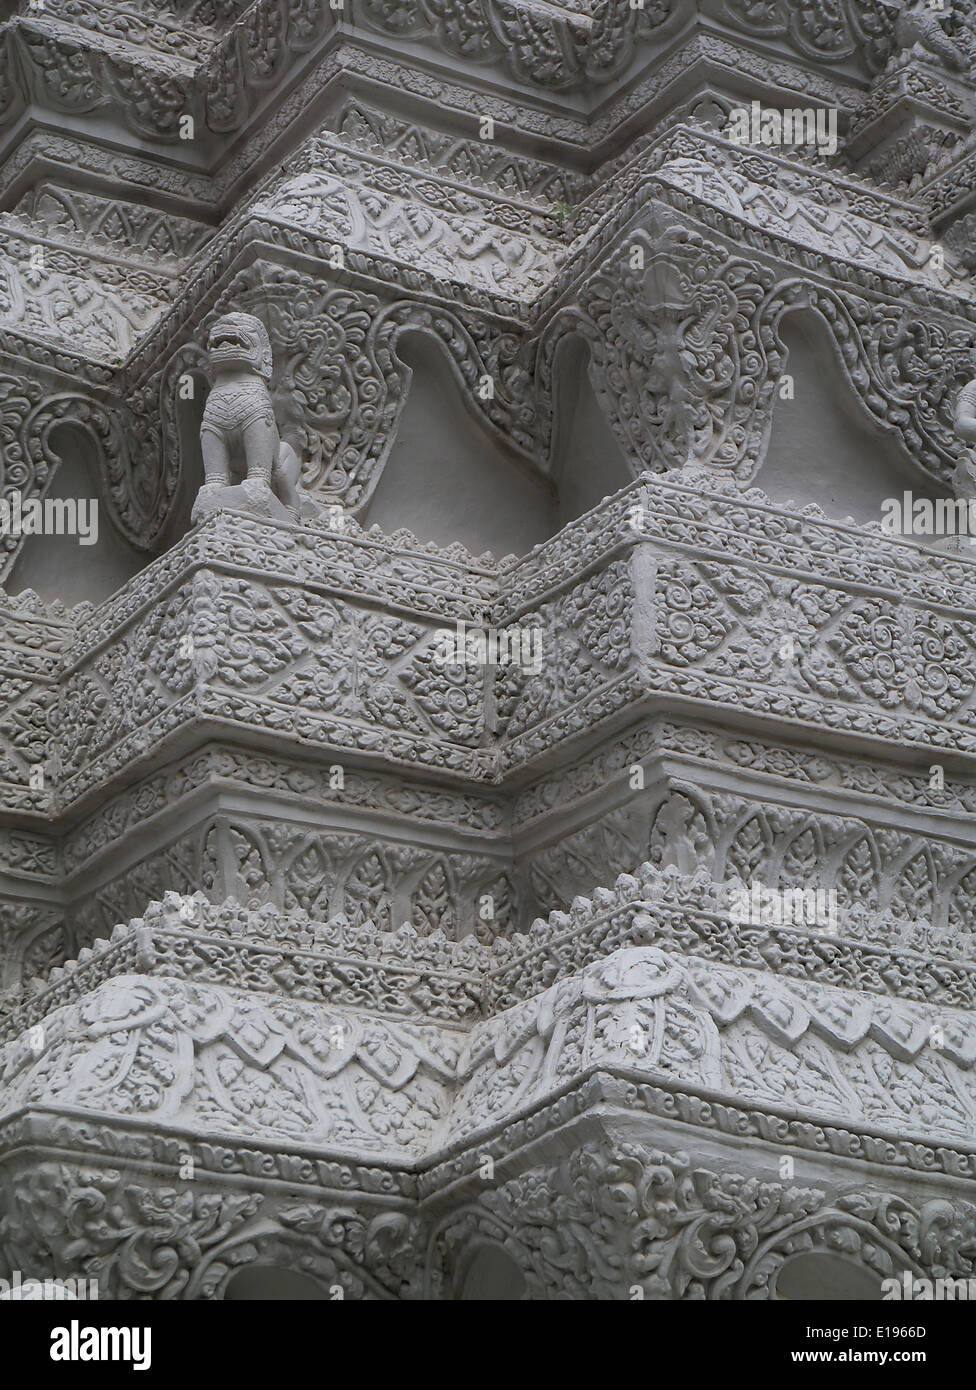 Detail of the architectural work on the temples at Wat Hanchey Cambodia - Stock Image